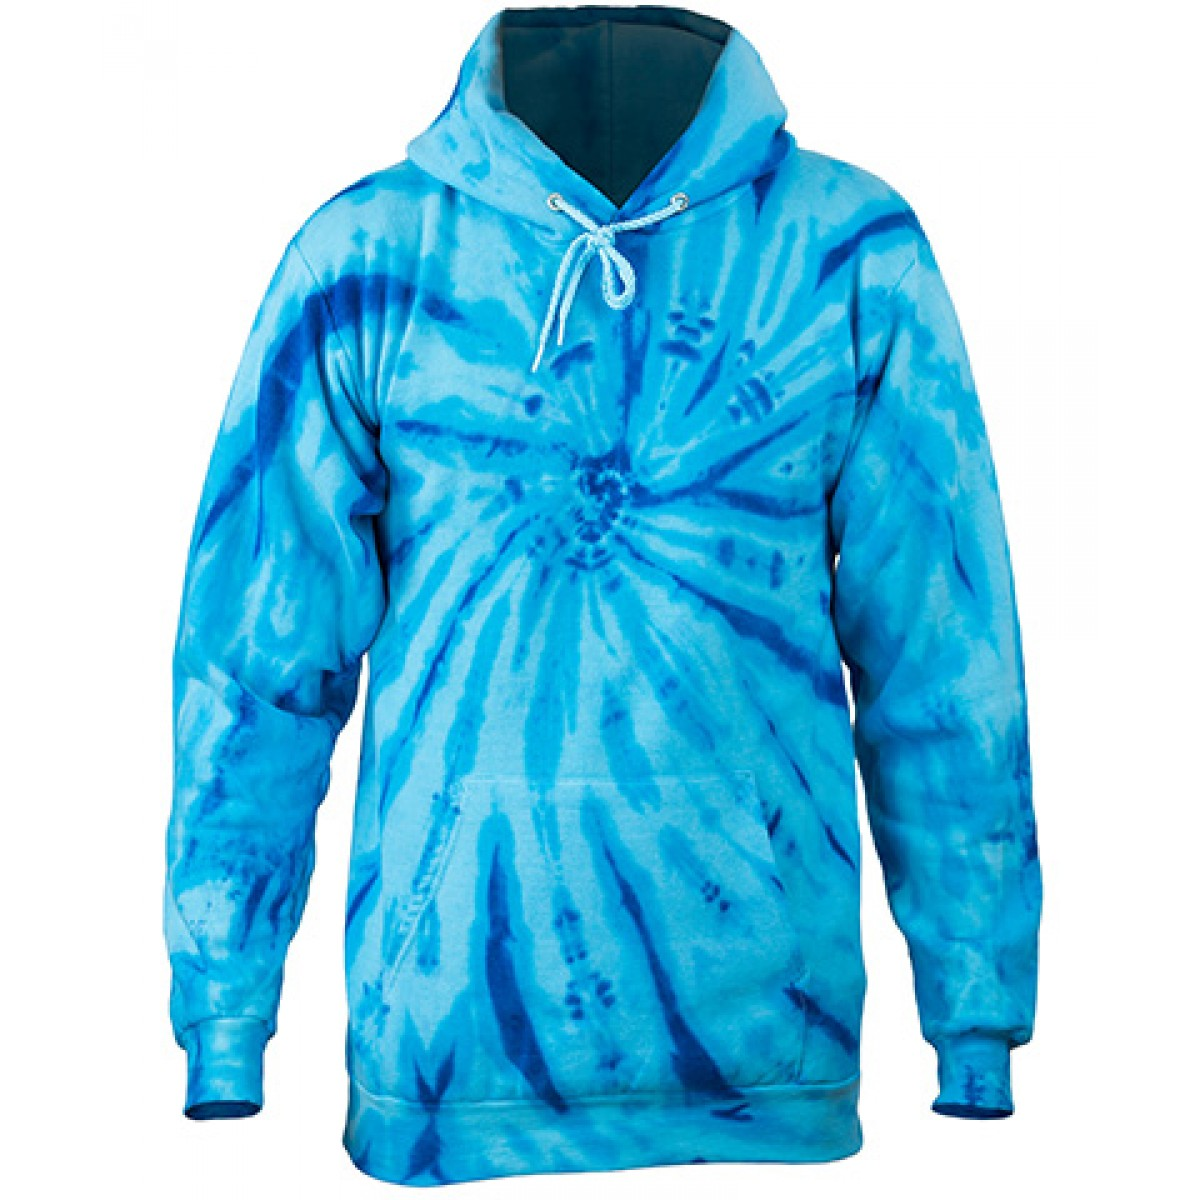 Tie-Dye Pullover Hooded Sweatshirt-Tropic Blue-2XL